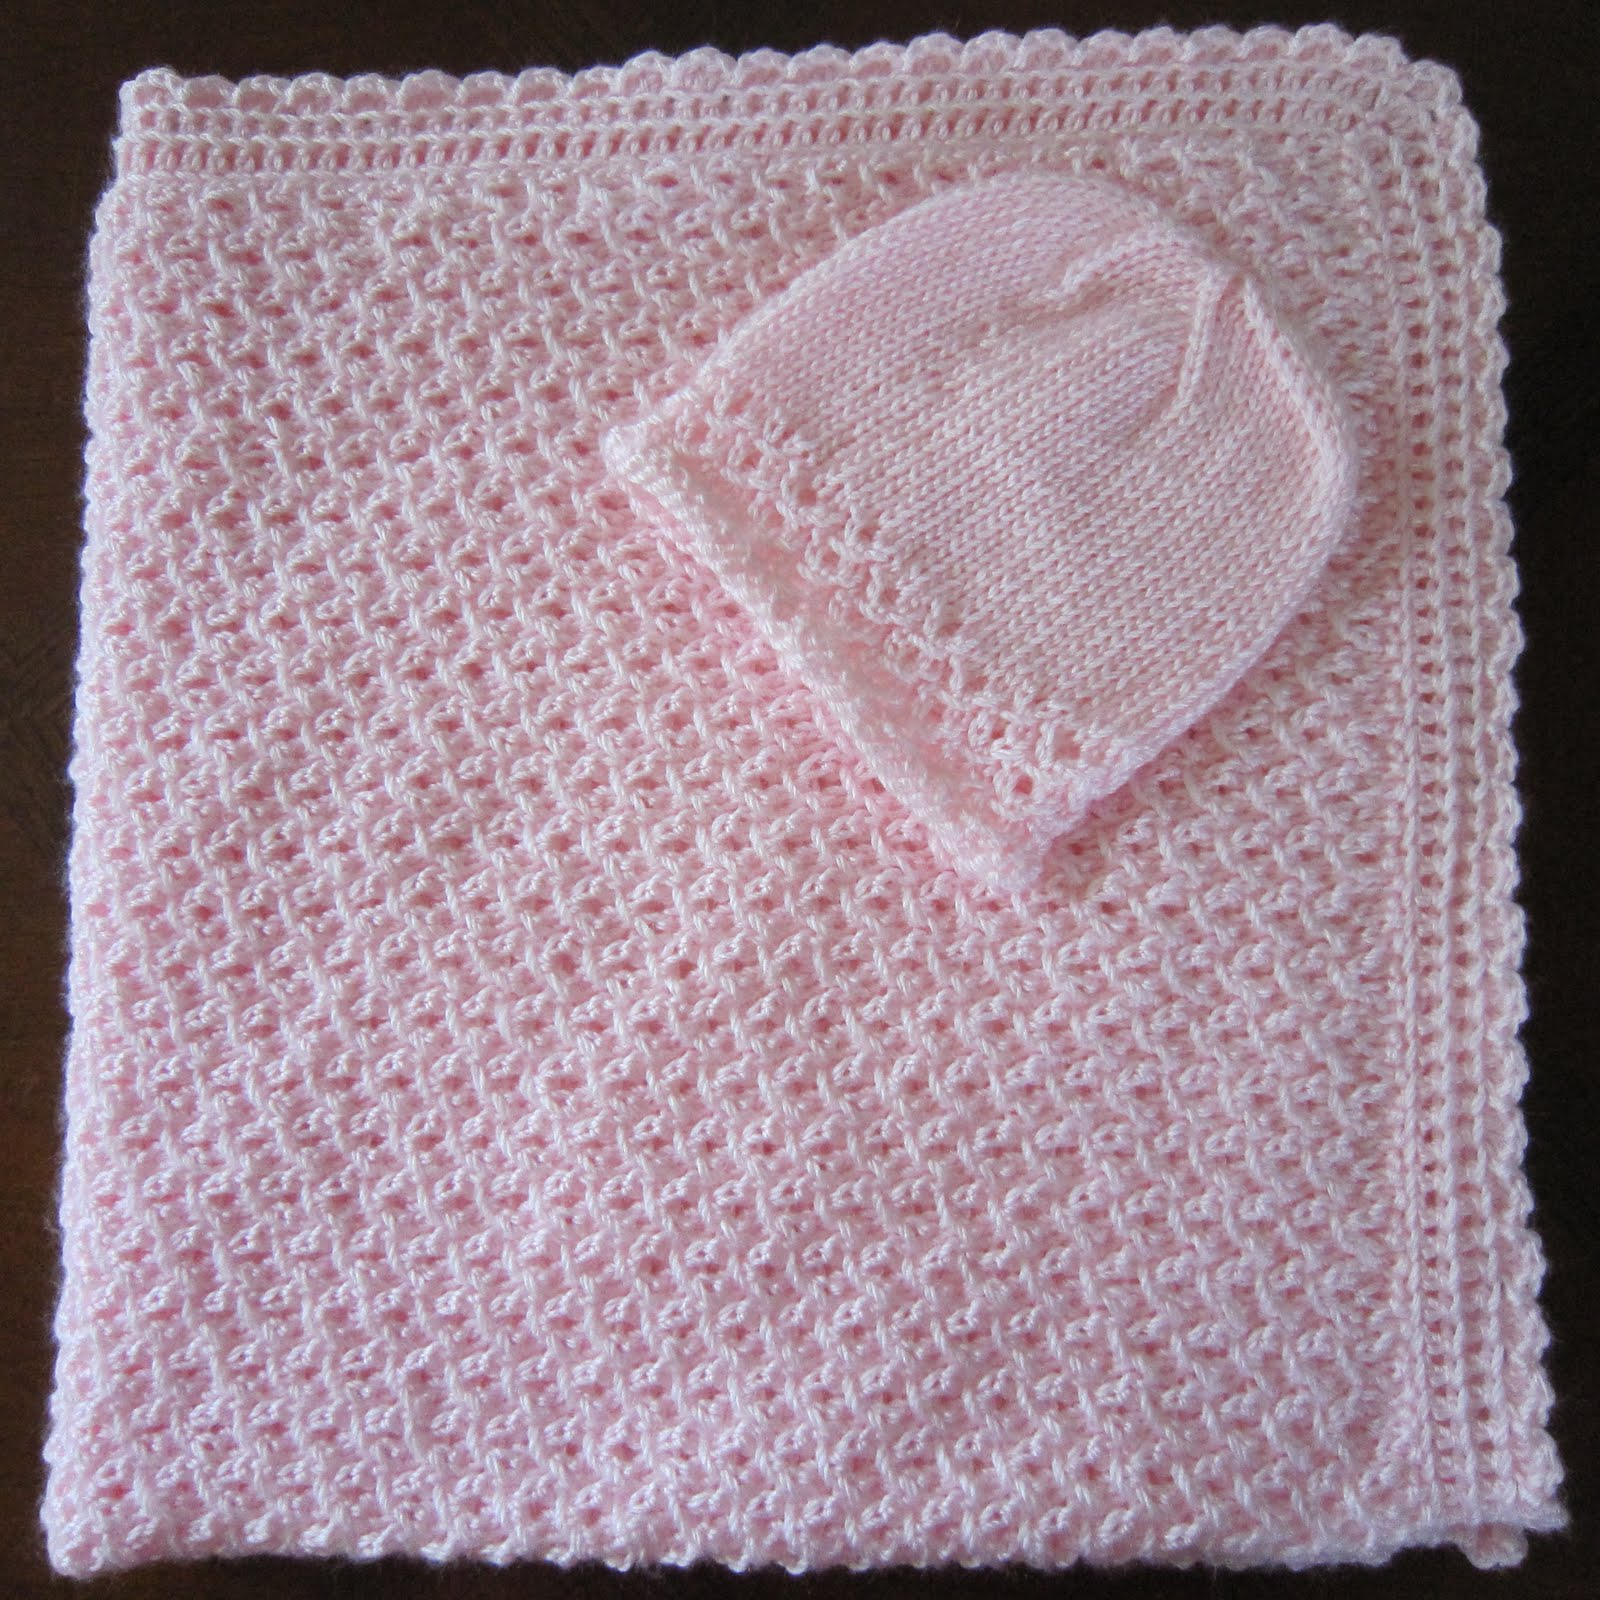 Knitted Baby Blanket Free Pattern : Sea Trail Grandmas: Free KNIT PATTERN PREEMIE HAT AND BLANKET WAVES WITH CROC...